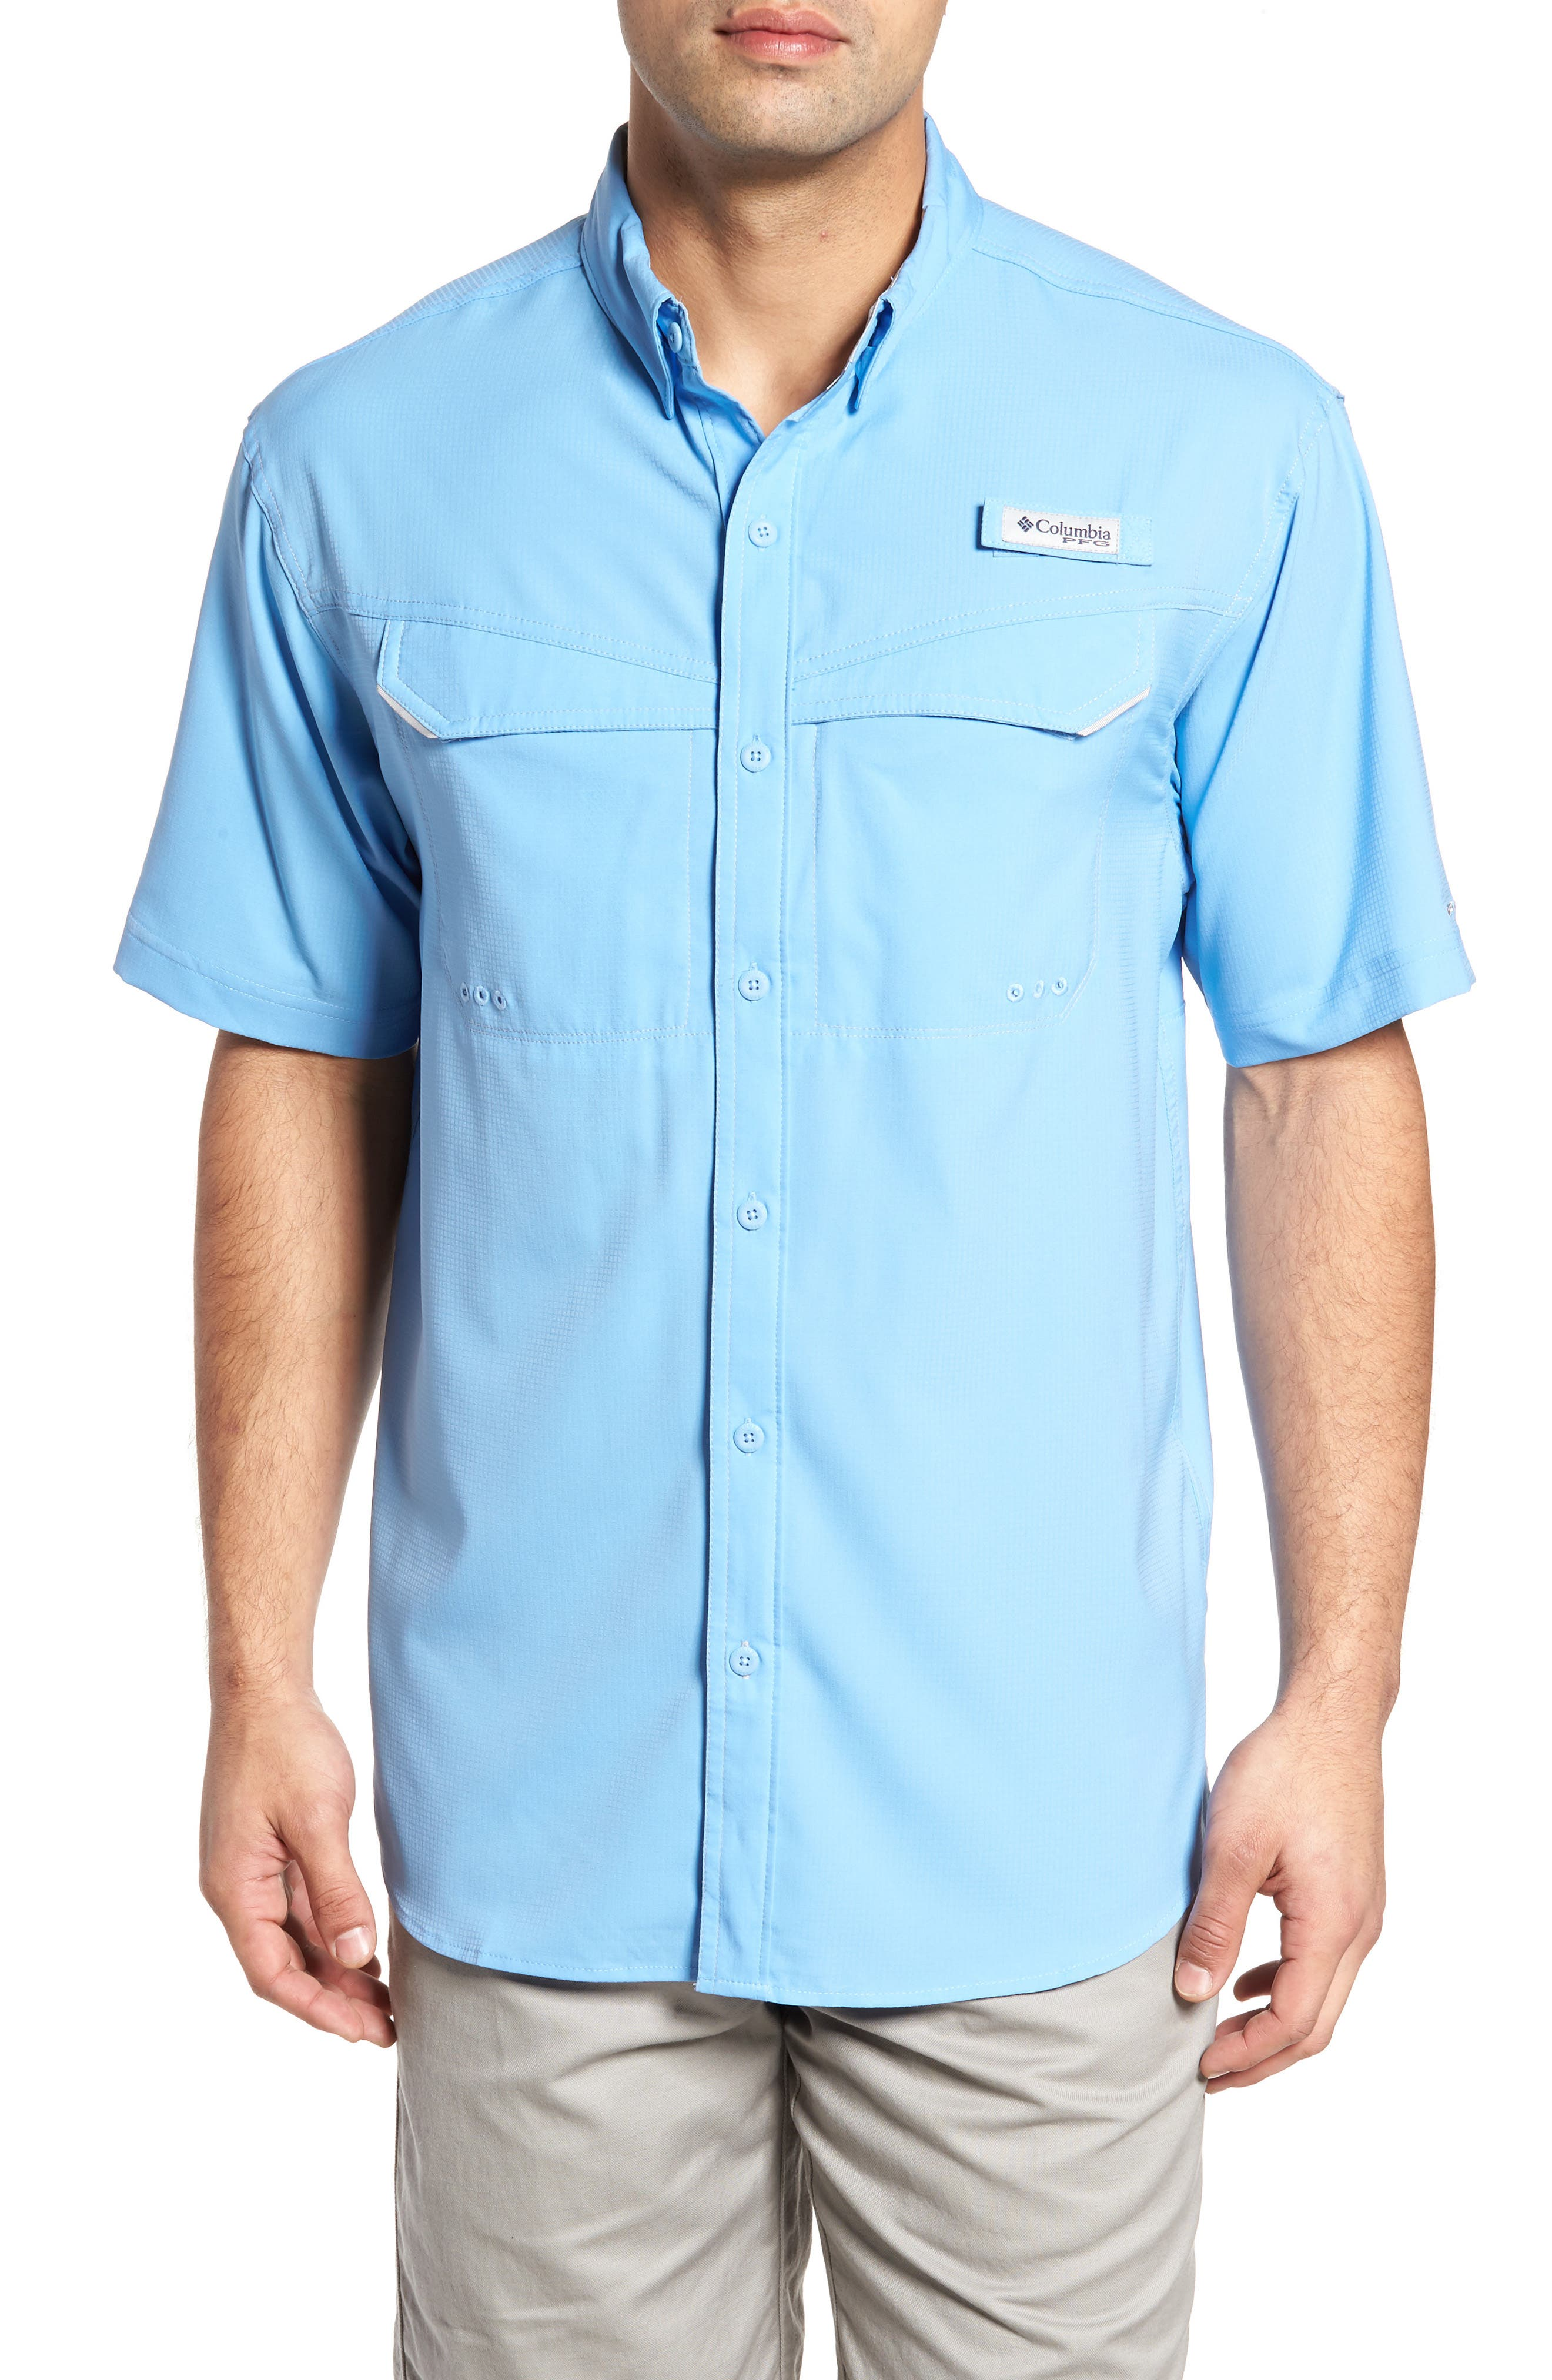 PFG Low Drag Offshore Woven Shirt,                             Main thumbnail 1, color,